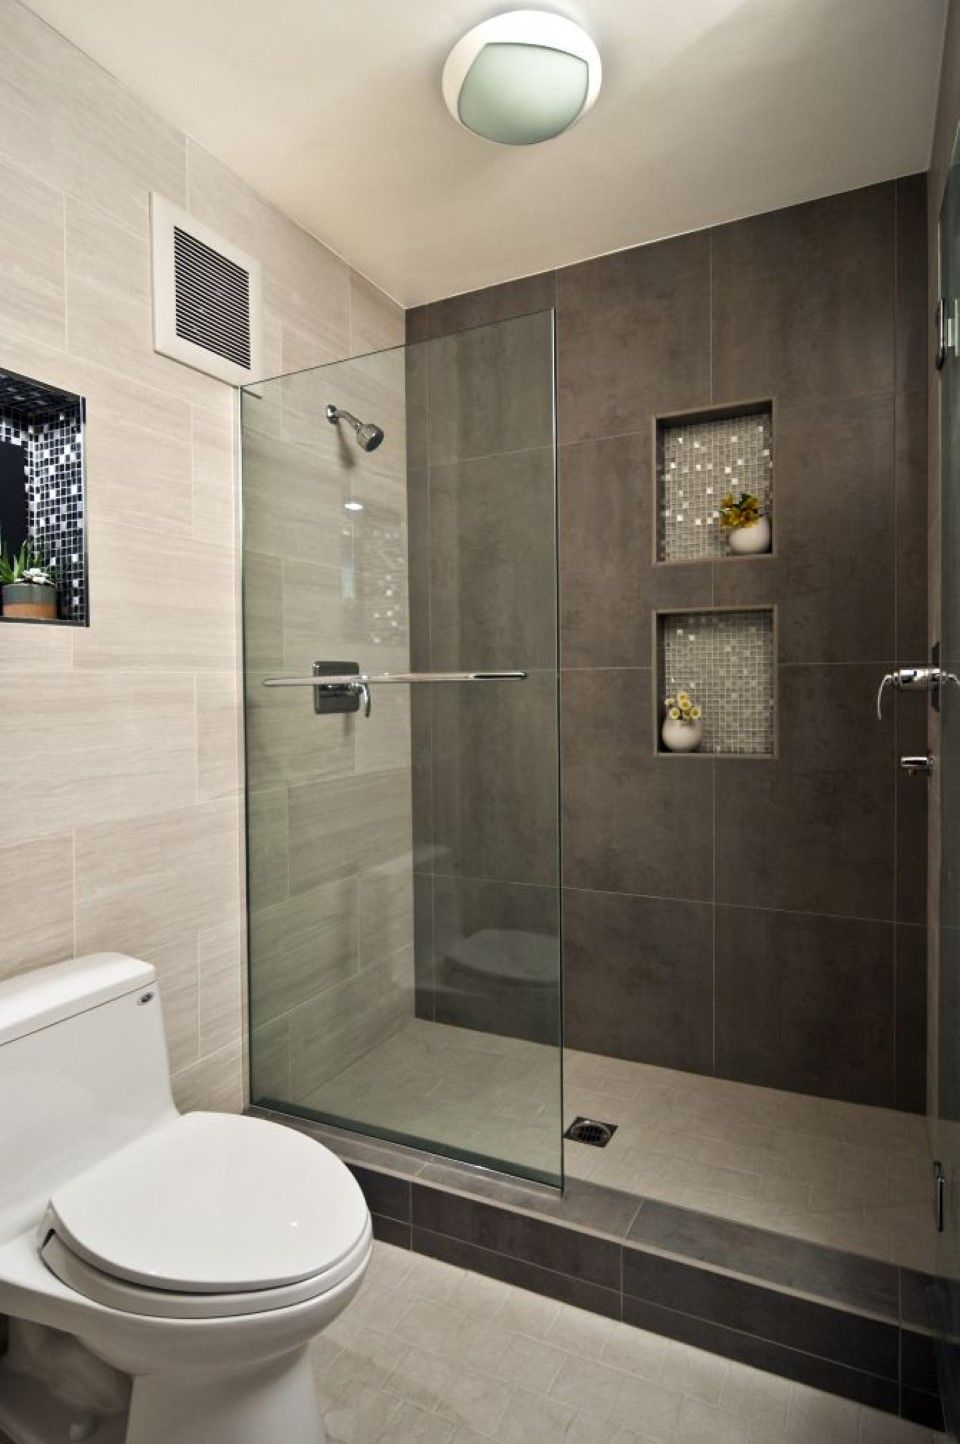 Double shower niches guru kitchen and bath dezine - Bathroom tile ideas for small bathrooms ...